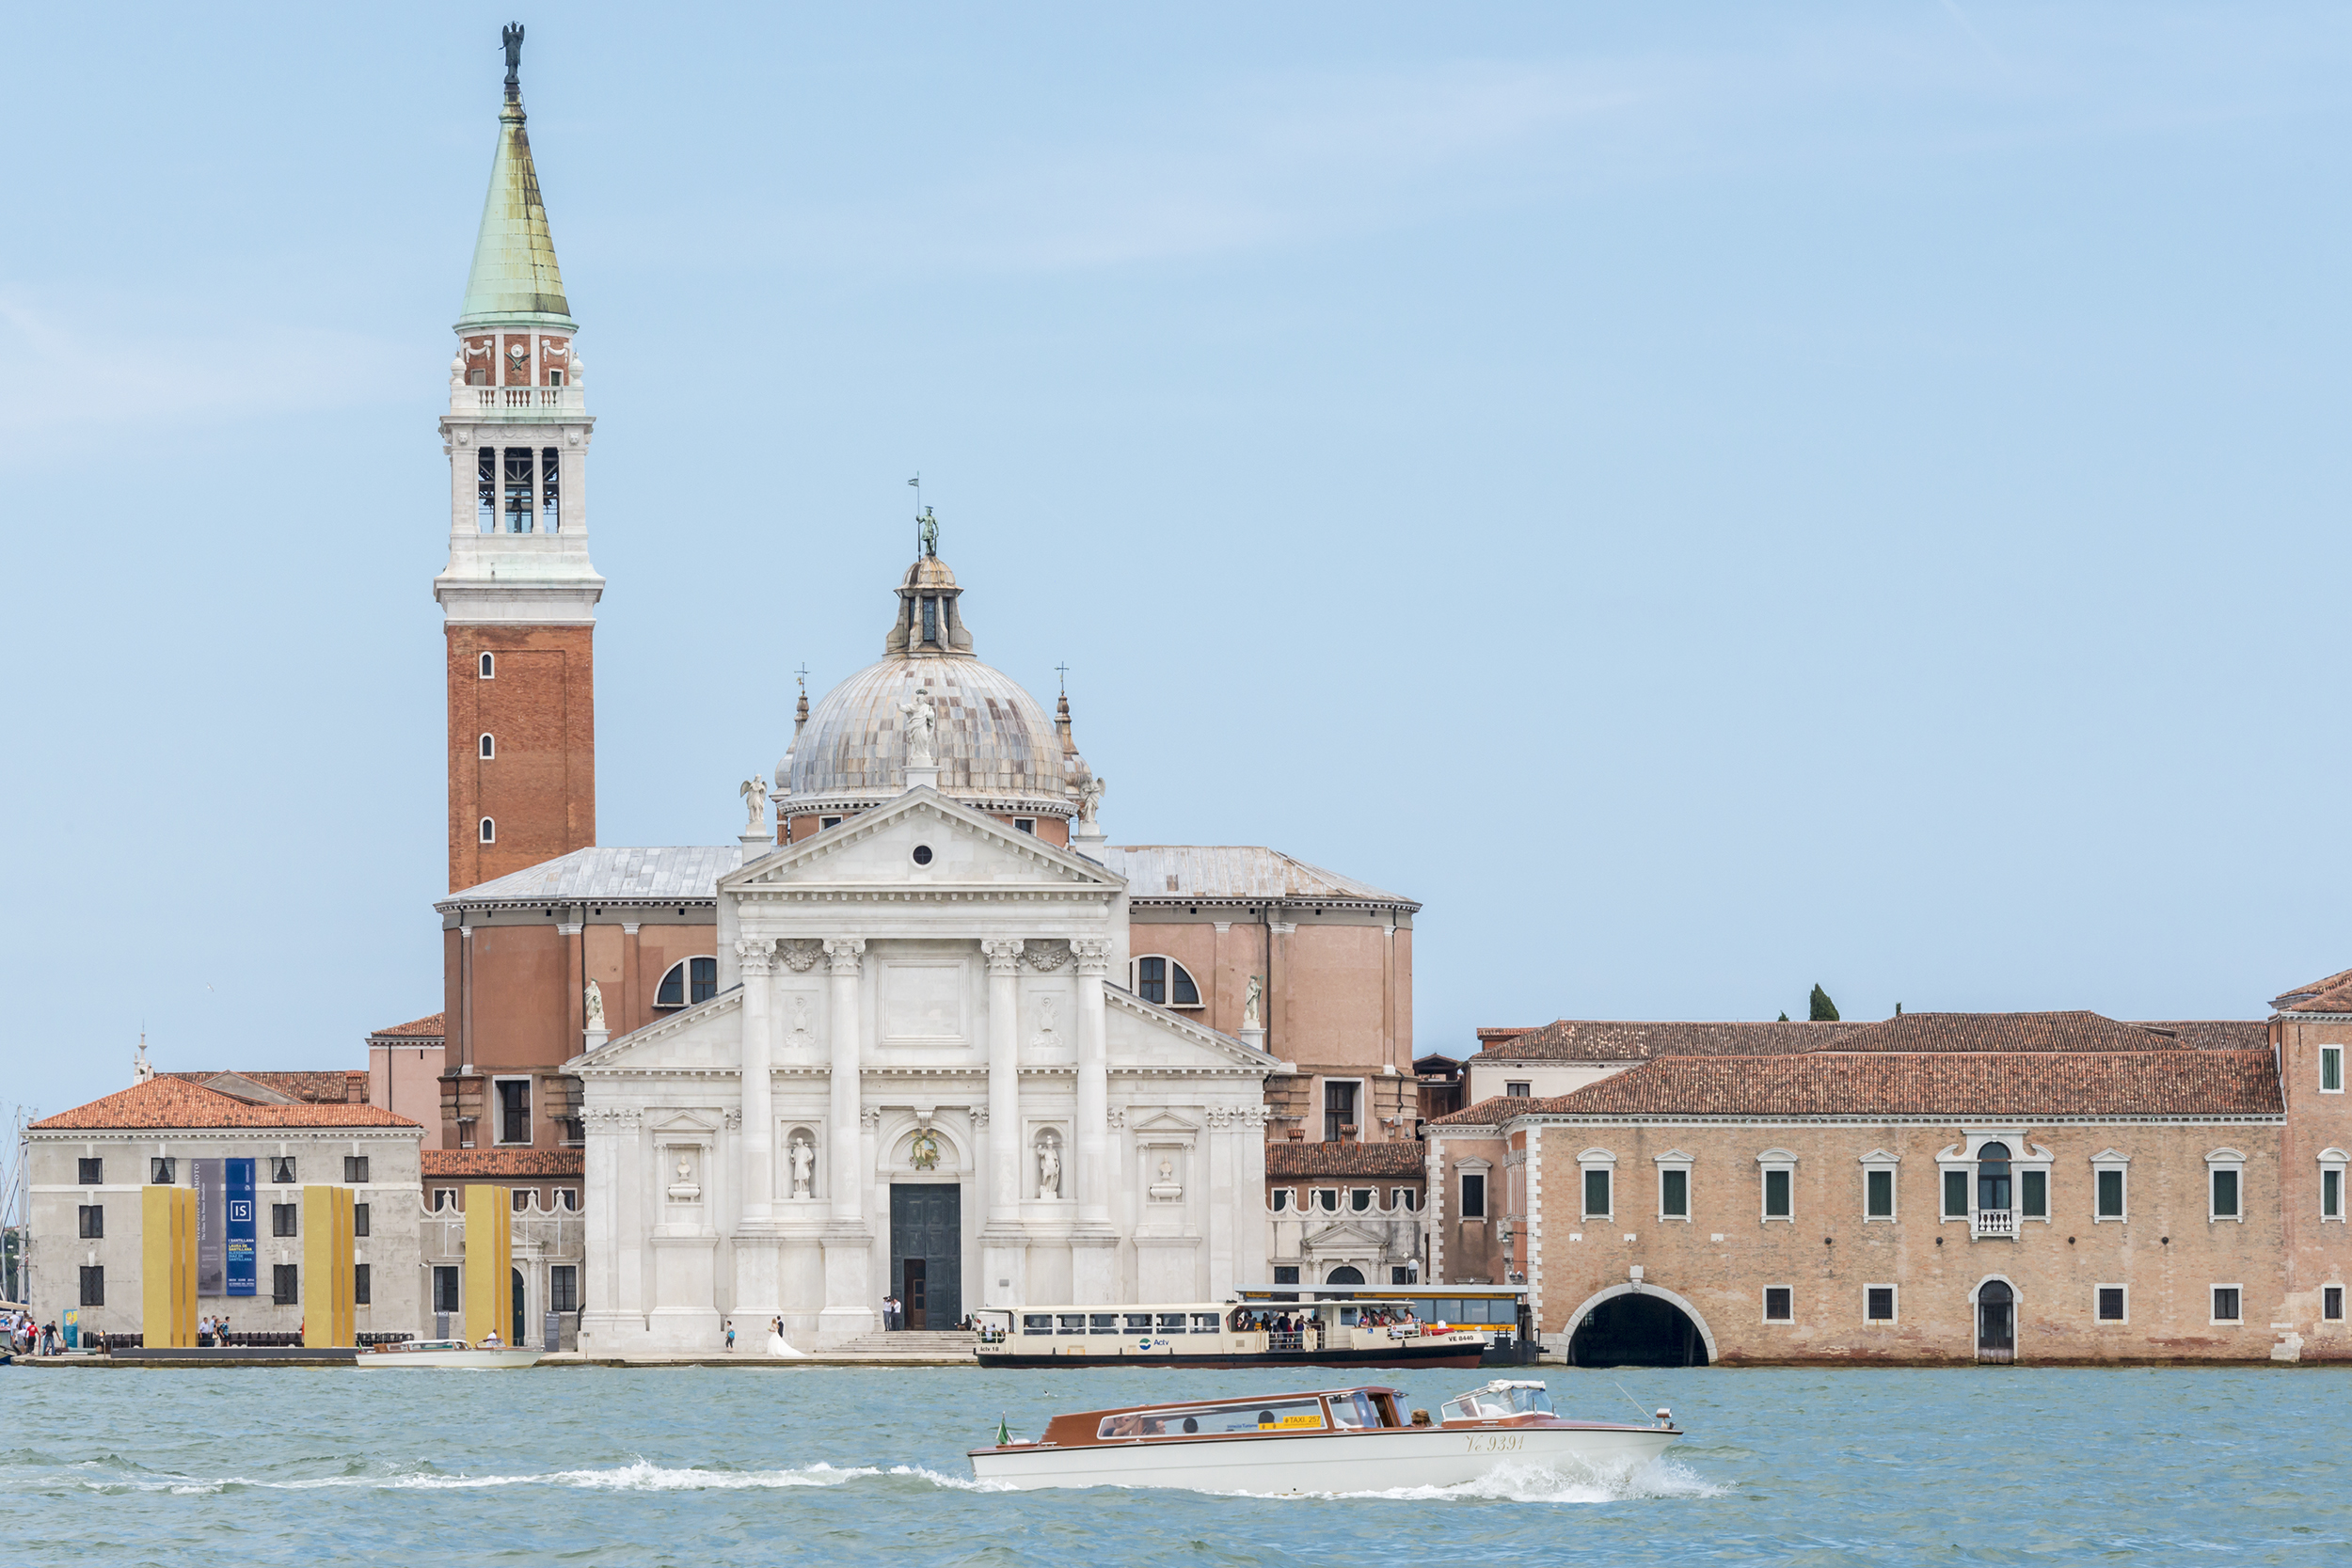 Waterfront of Venice